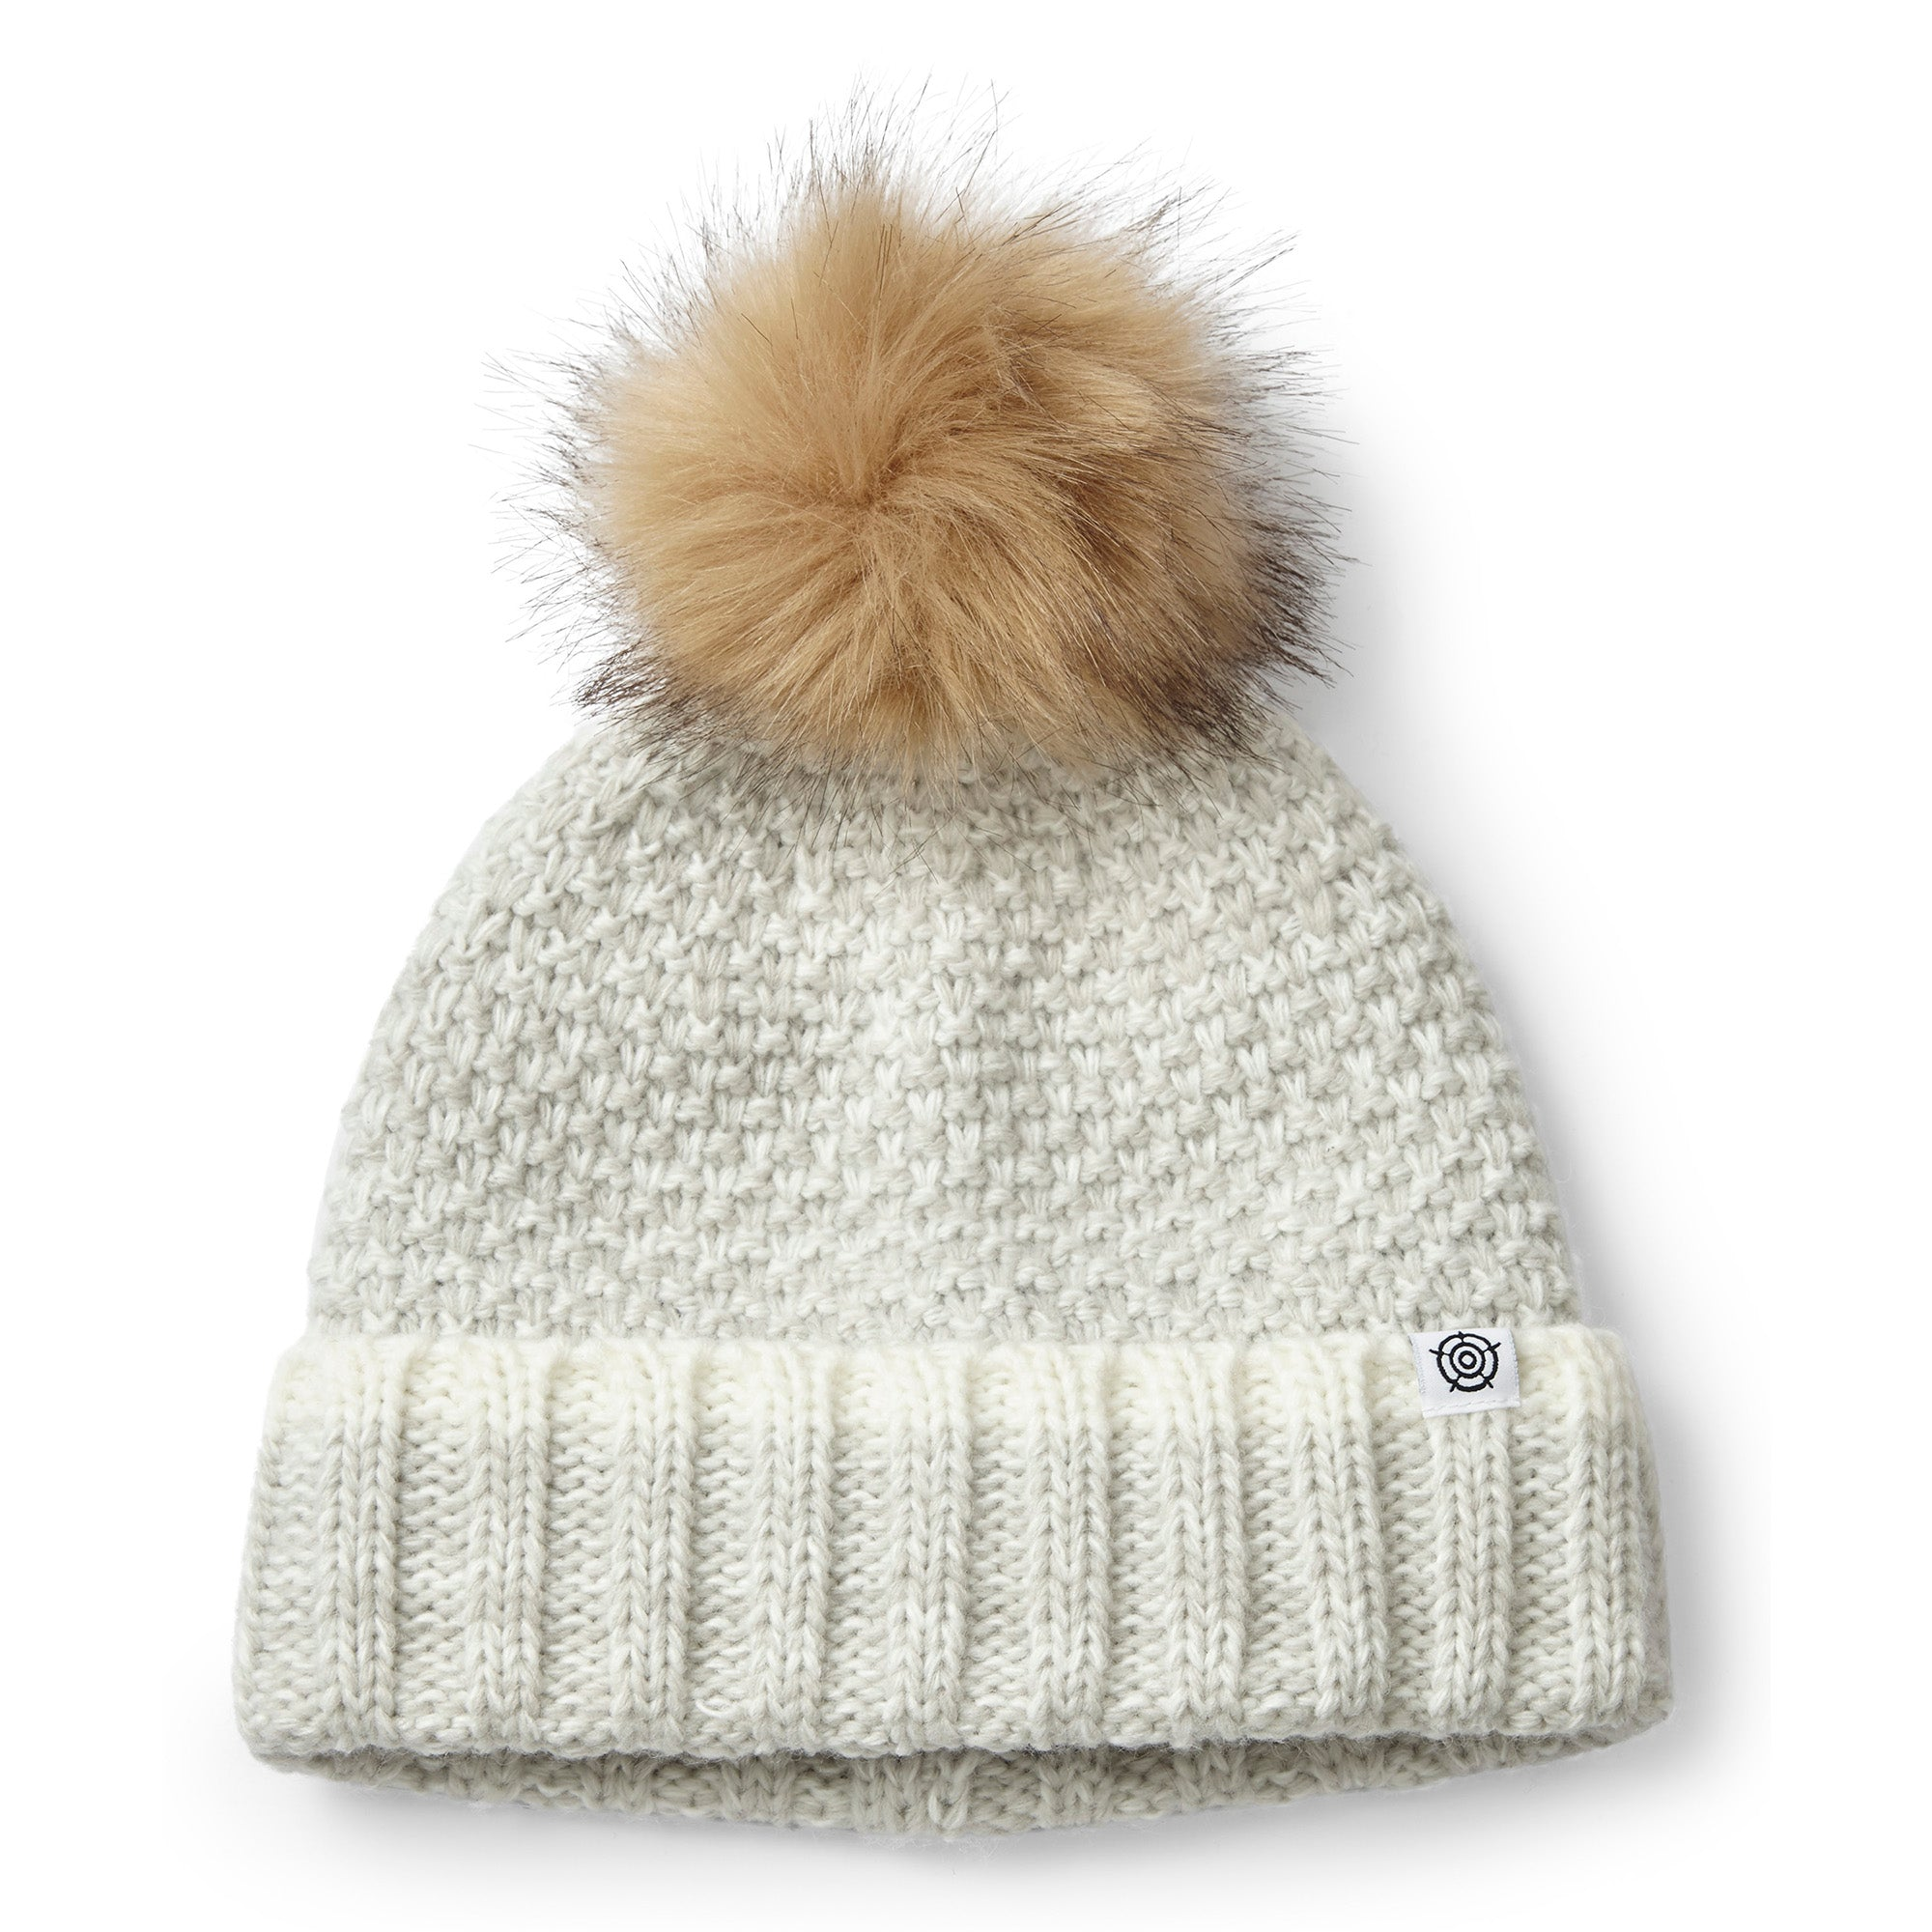 Bristol Knit Beanie Hat - Ice Grey Marl